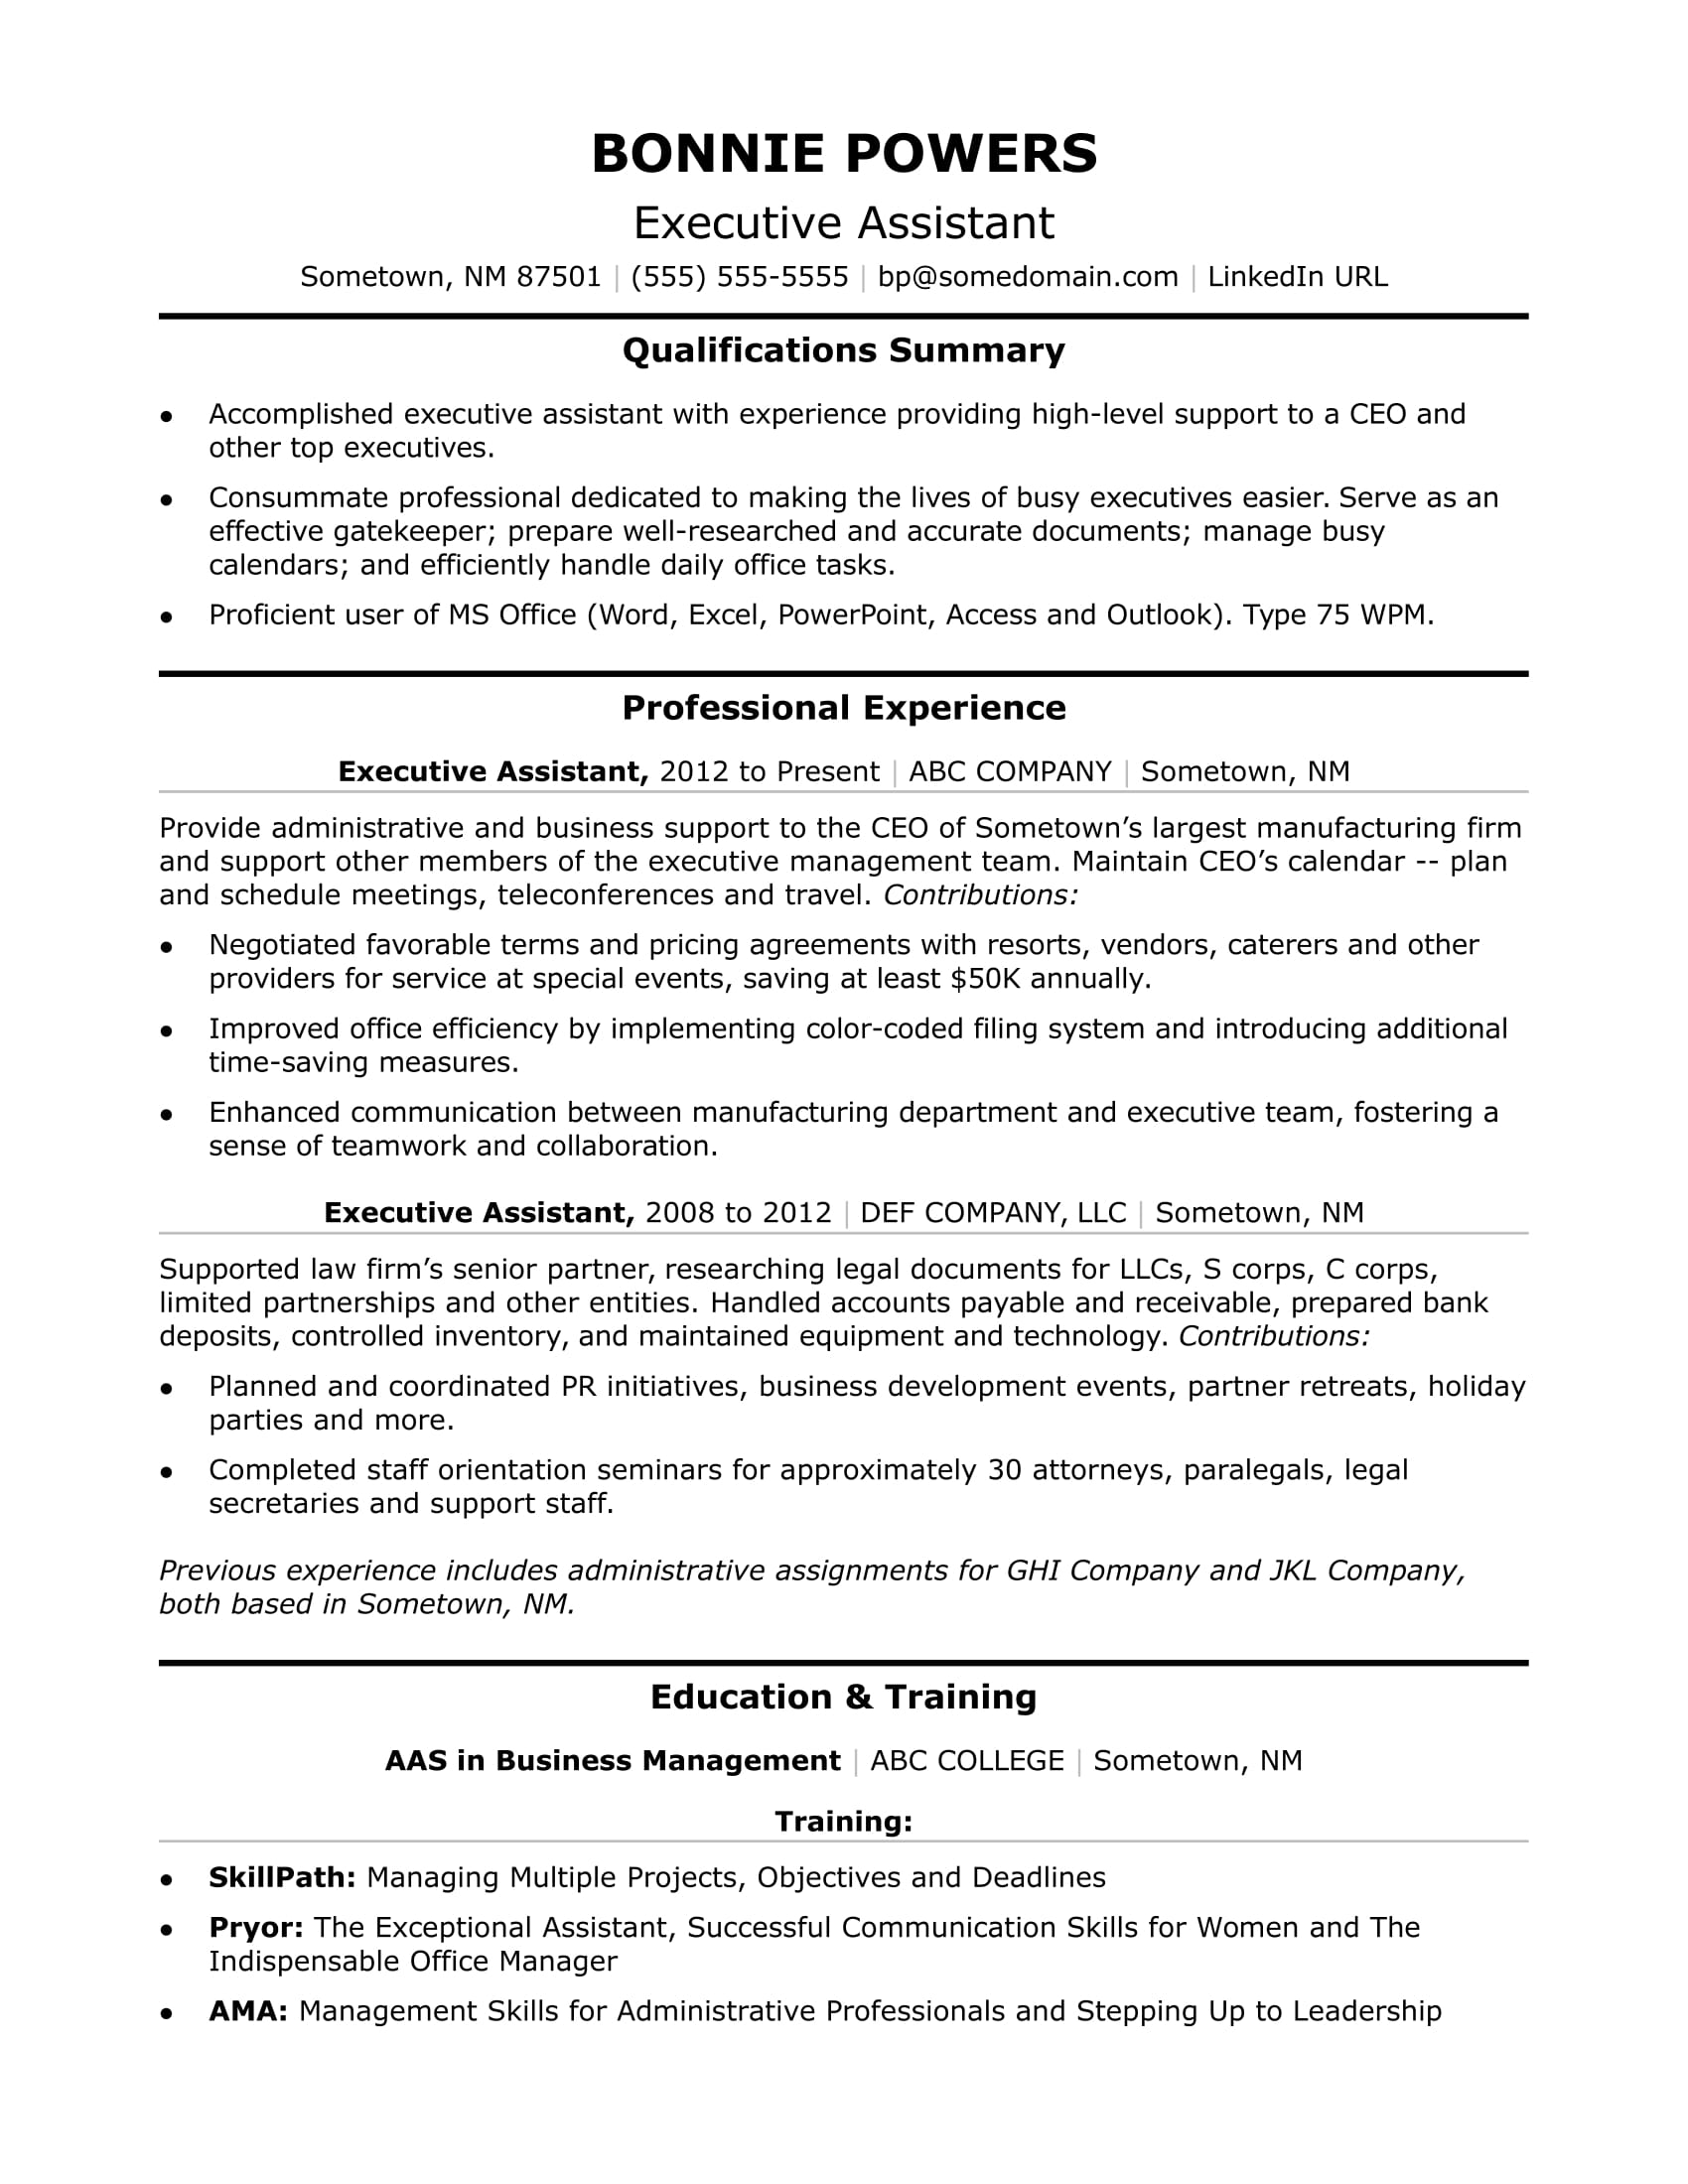 executive administrative assistant resume sample - Administrative Assistant Resume Sample